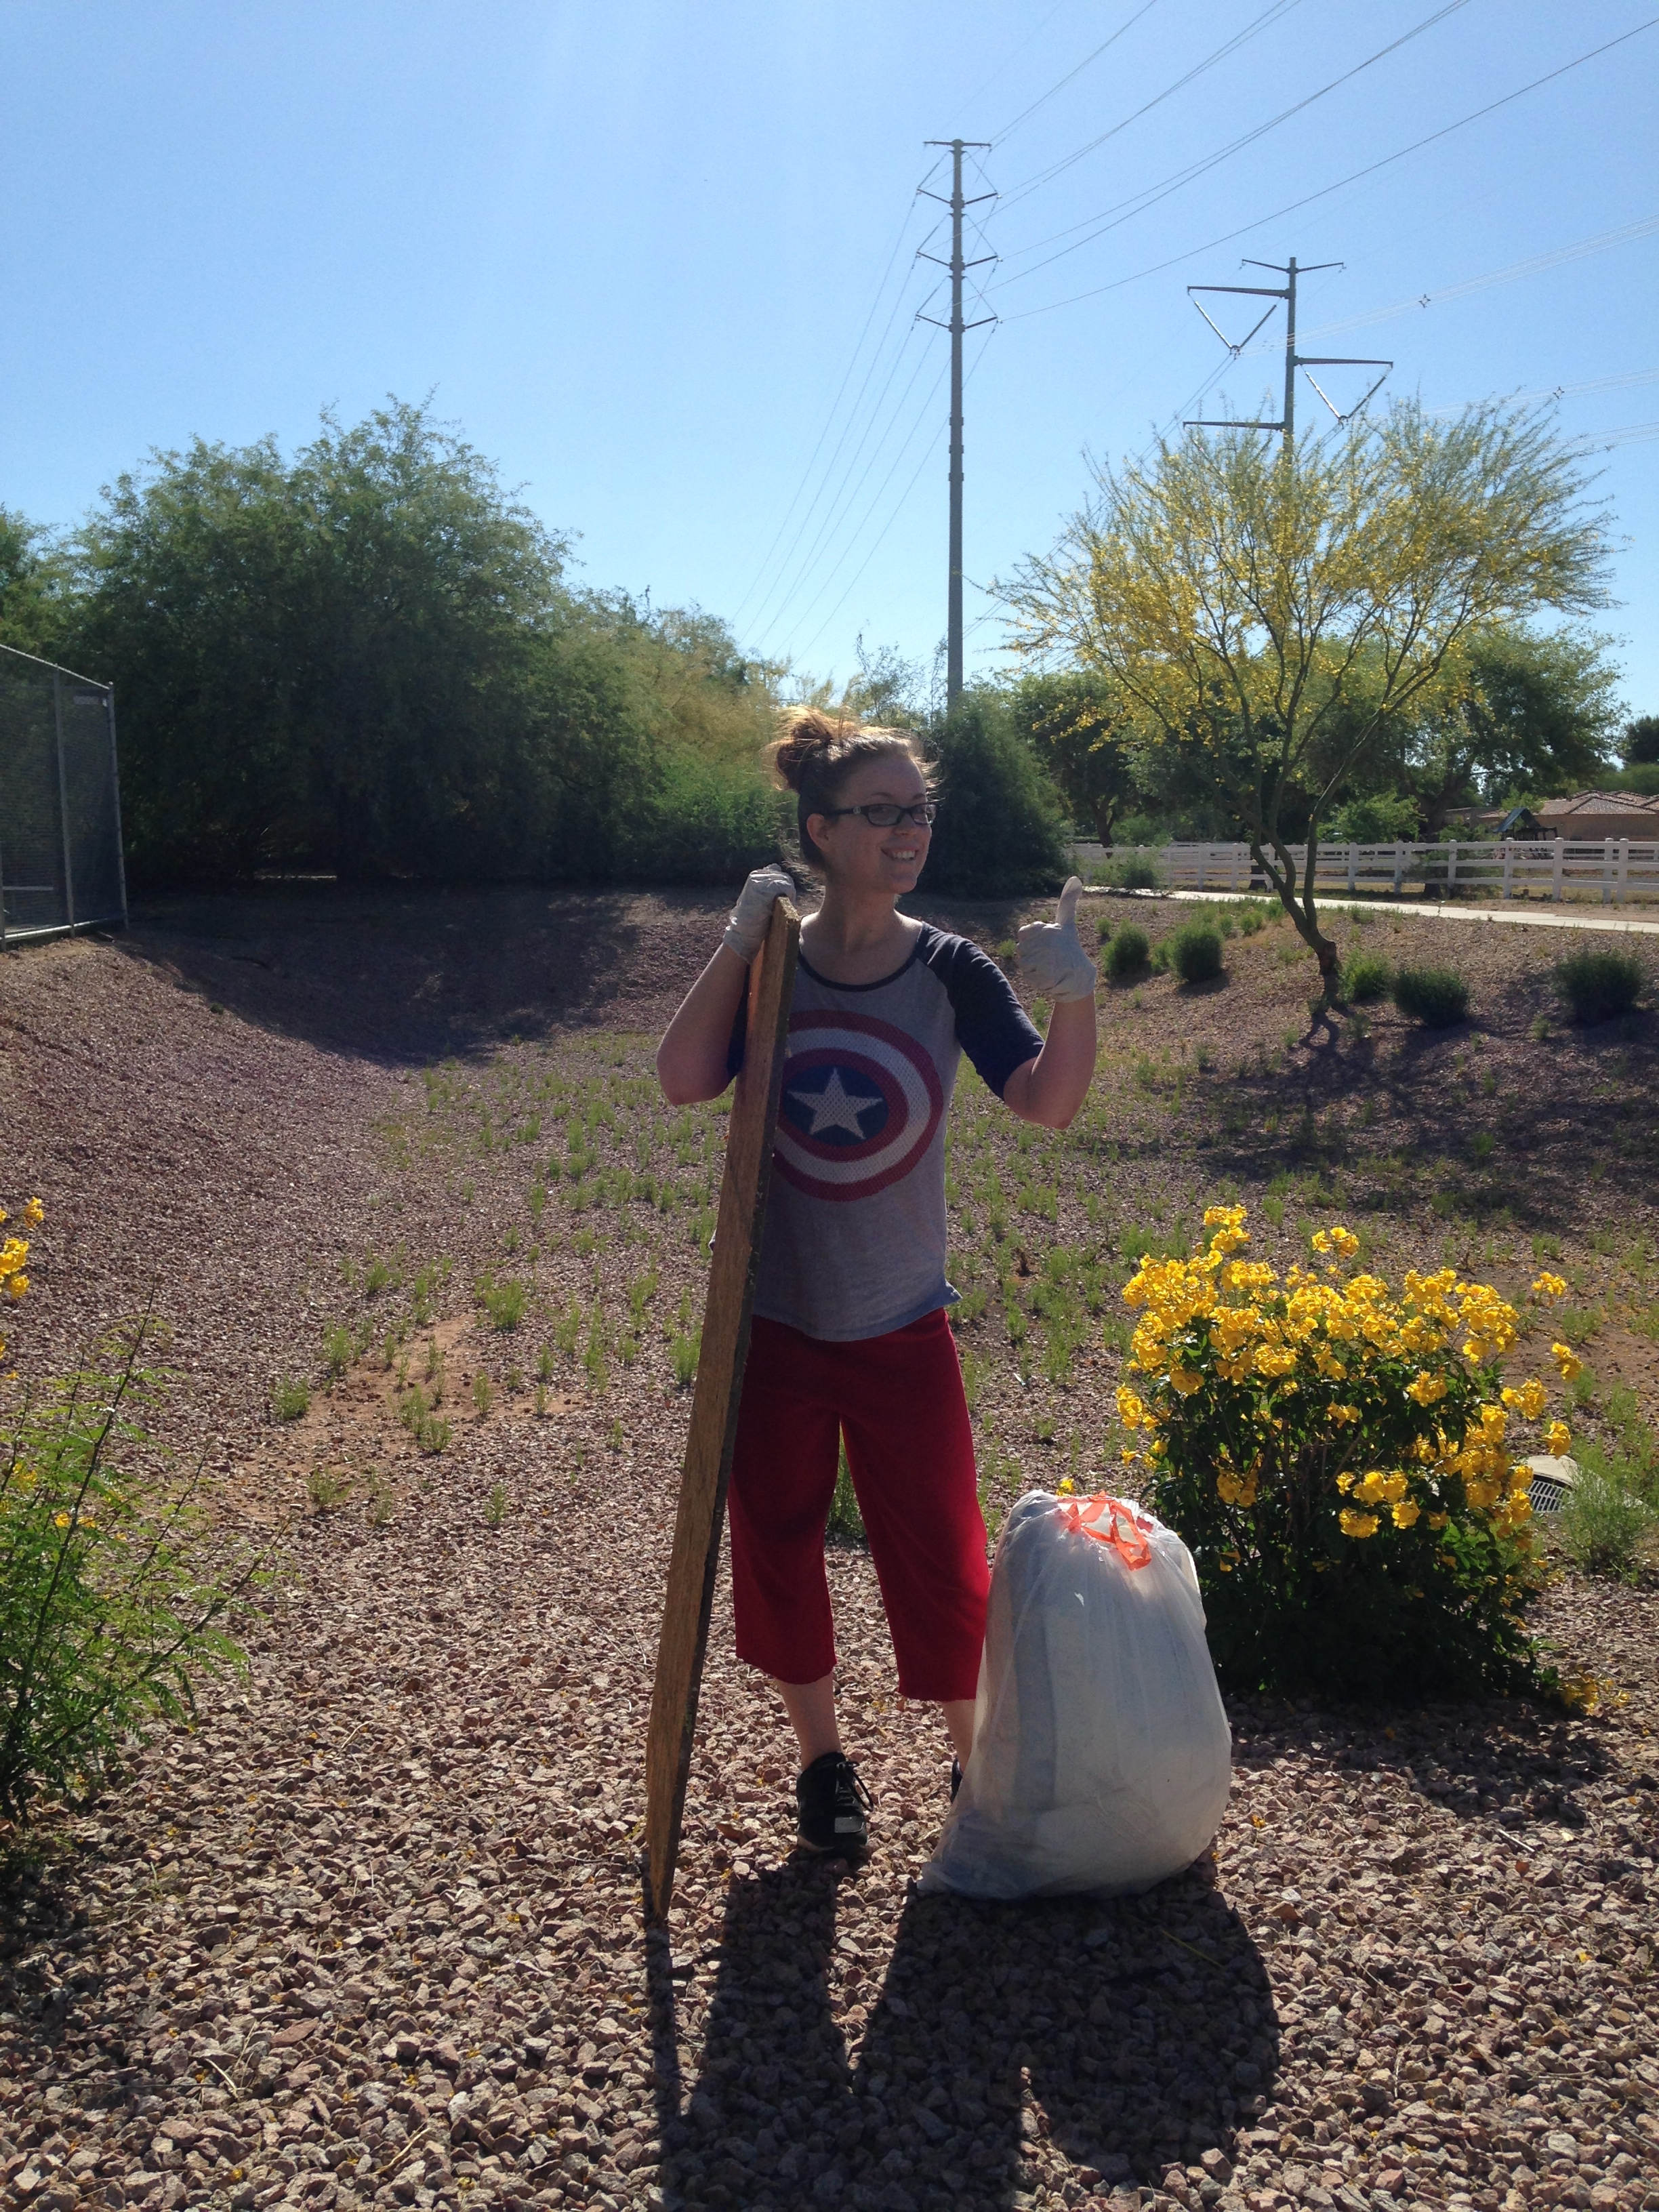 Shawna picked up scattered trash along a trail at the Gilbert Riparian Preserve.